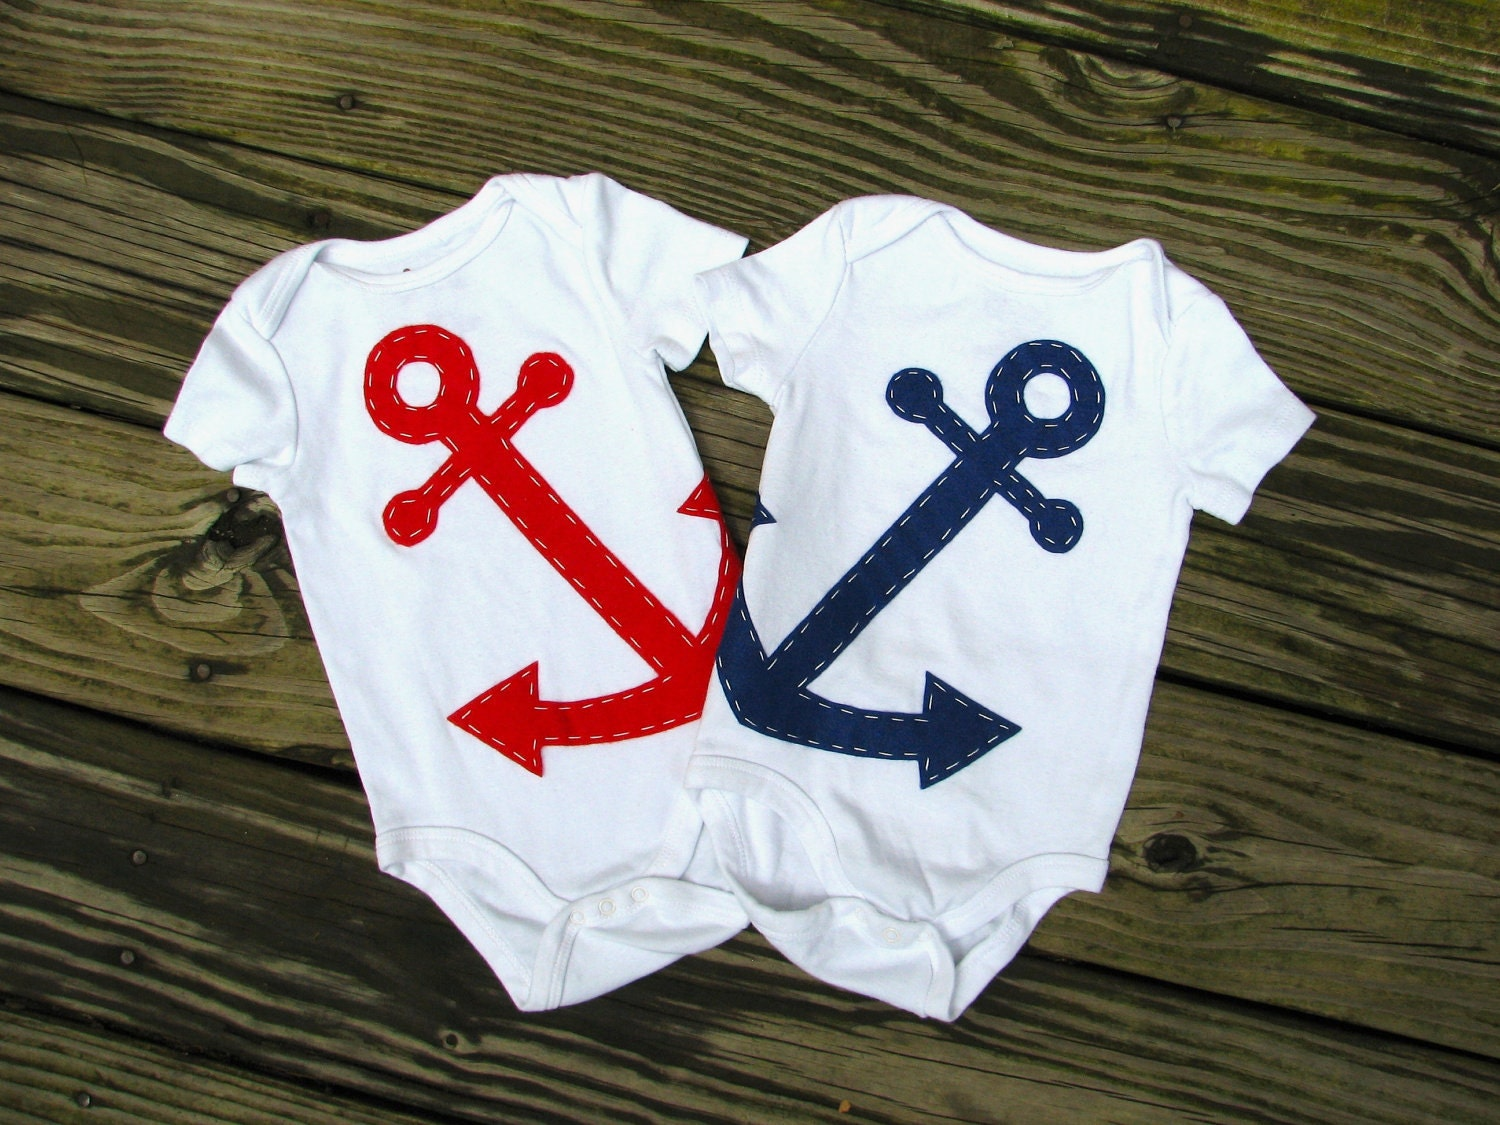 You searched for: nautical baby clothes! Etsy is the home to thousands of handmade, vintage, and one-of-a-kind products and gifts related to your search. No matter what you're looking for or where you are in the world, our global marketplace of sellers can help you .